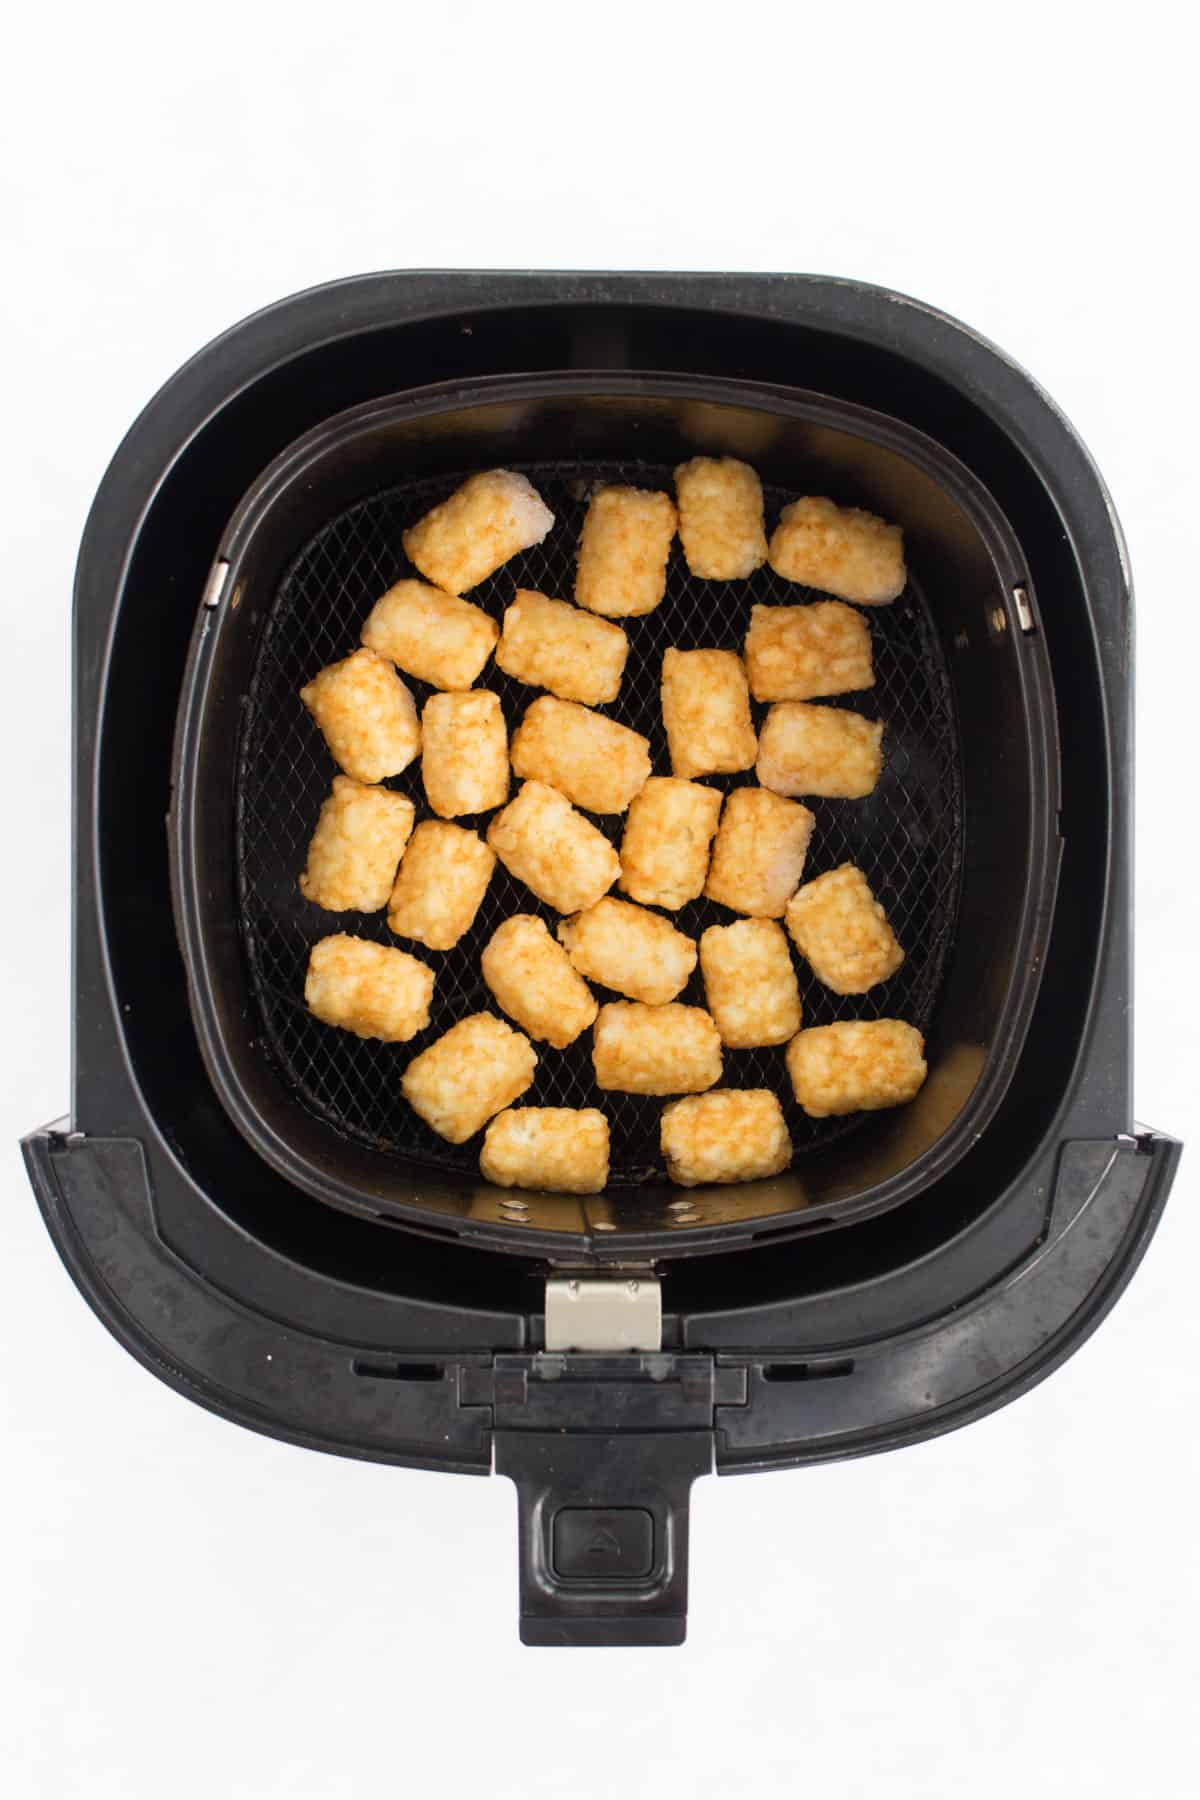 Frozen tater tots in the air fryer basket.